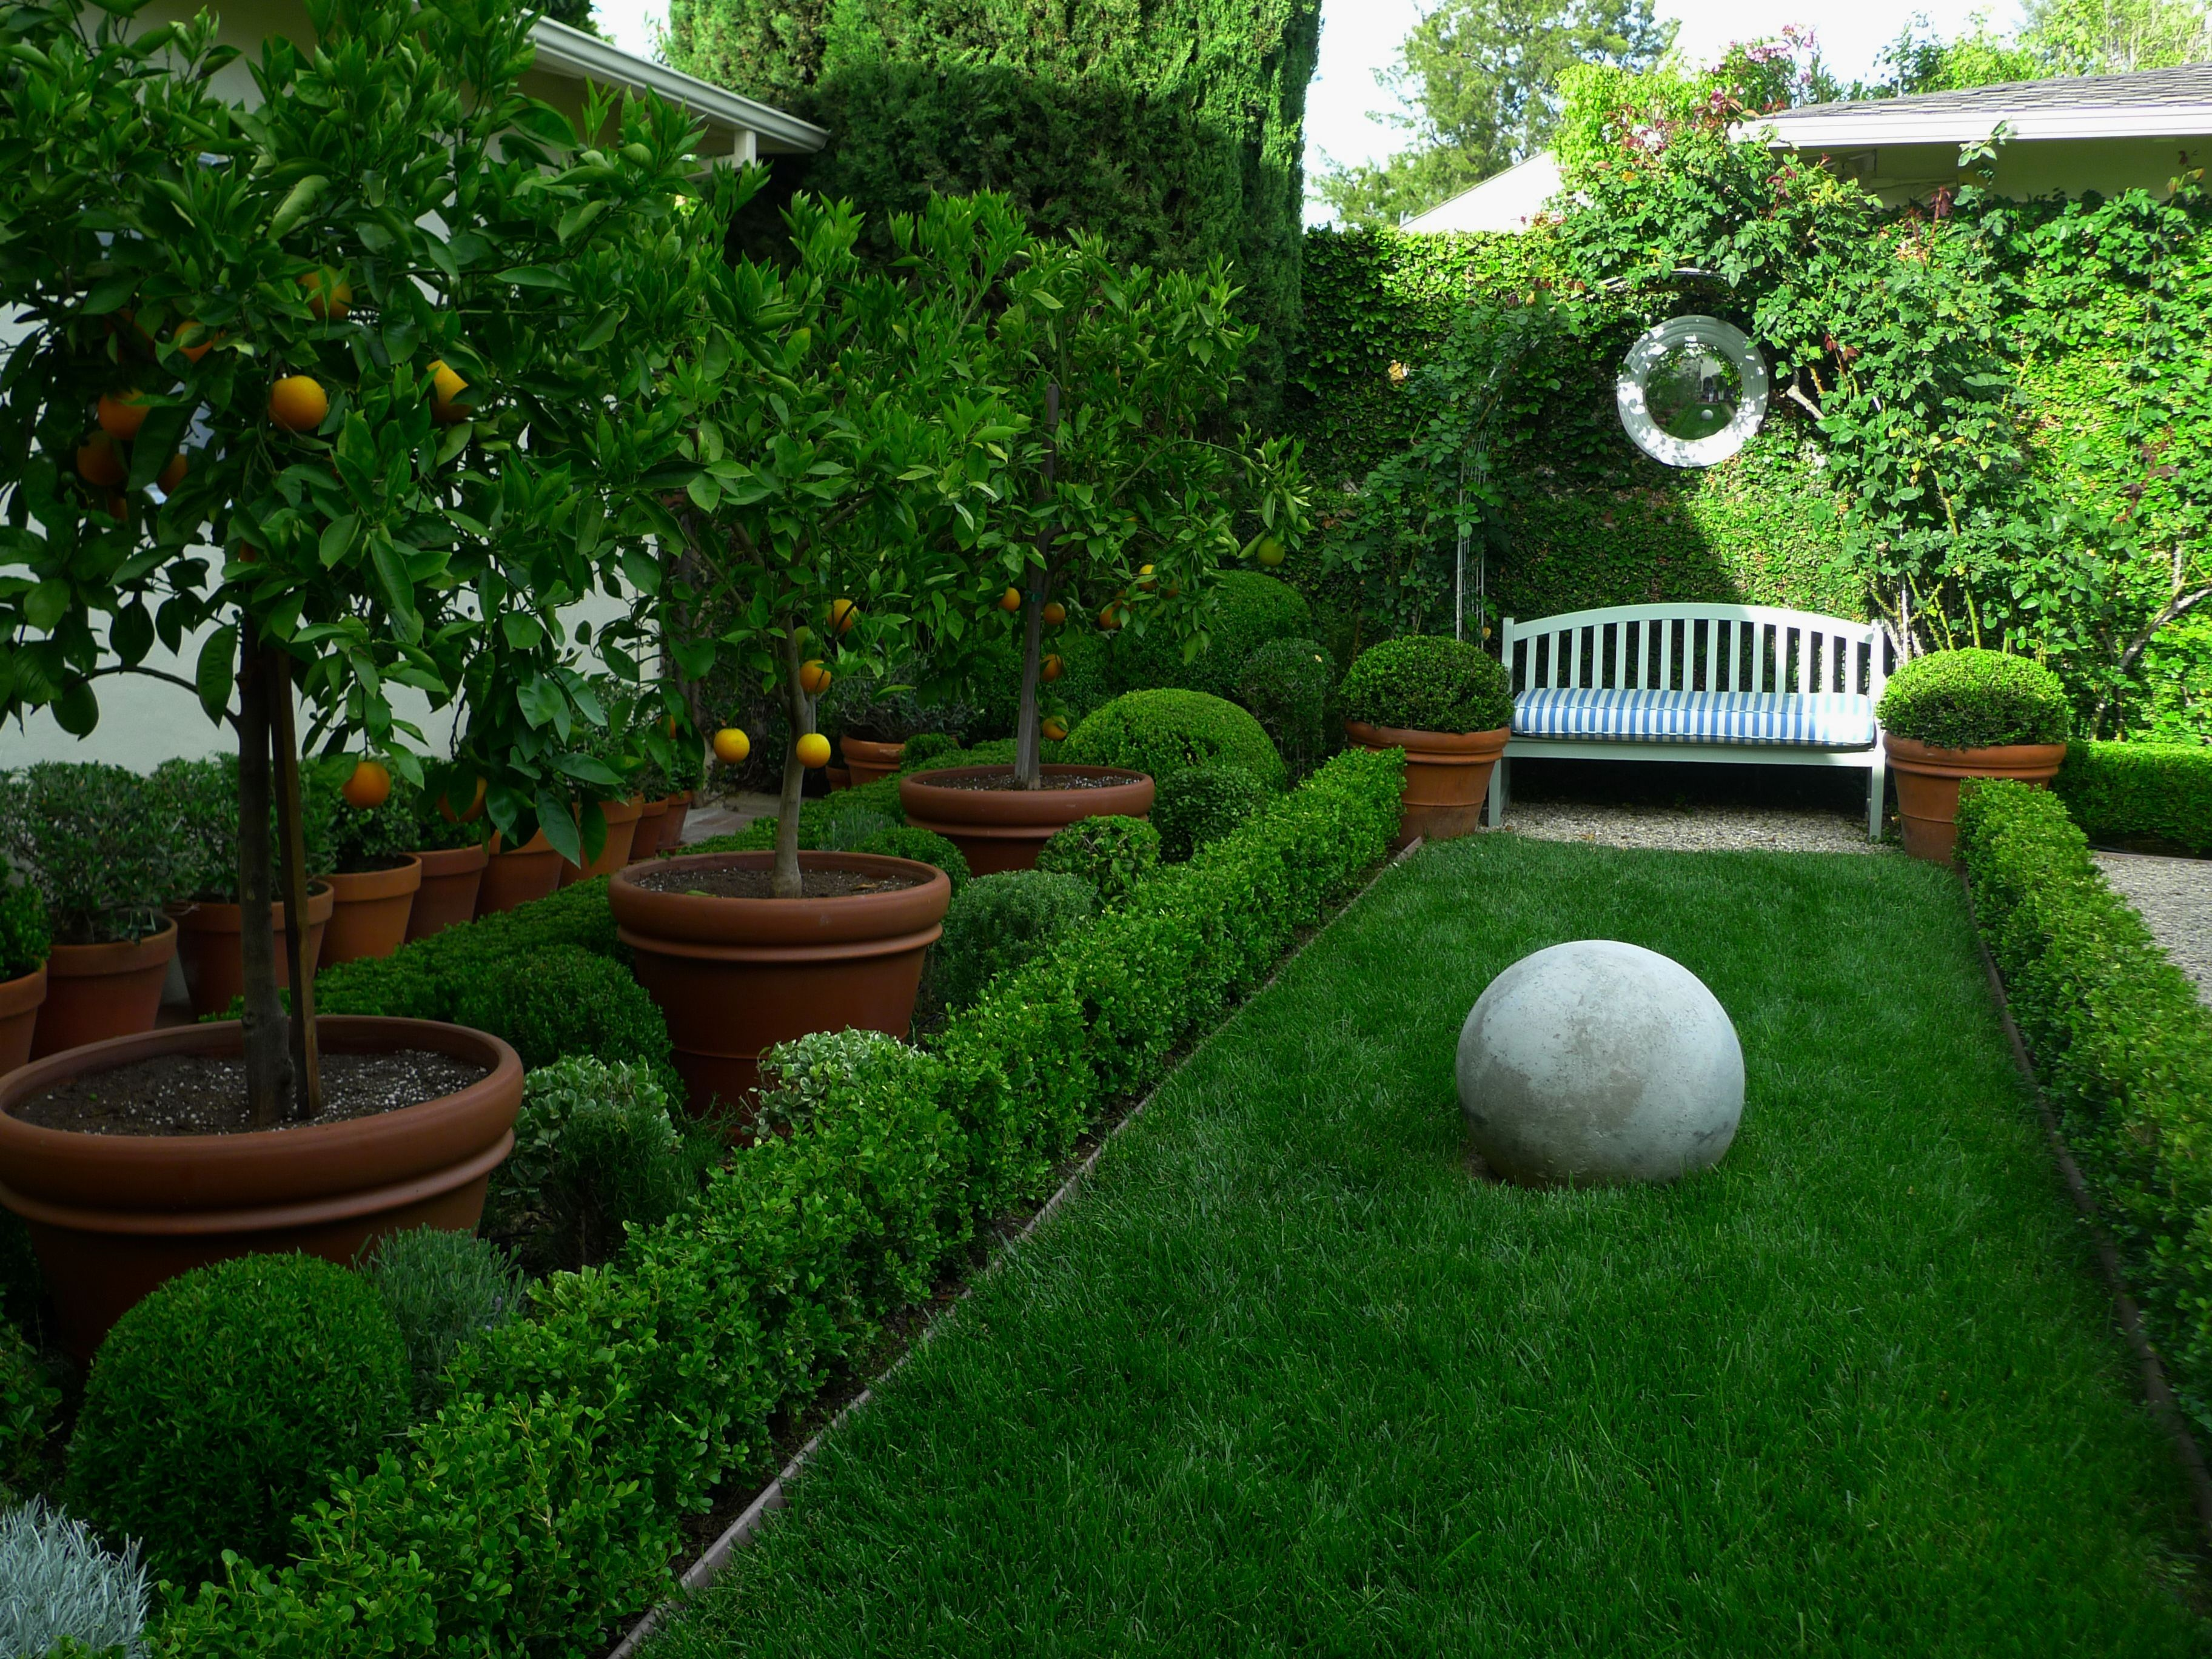 50 Beautiful Garden Designs You Can Build To Add Beauty Your Backyard Formal Fruit Tree Gardening Landscaping